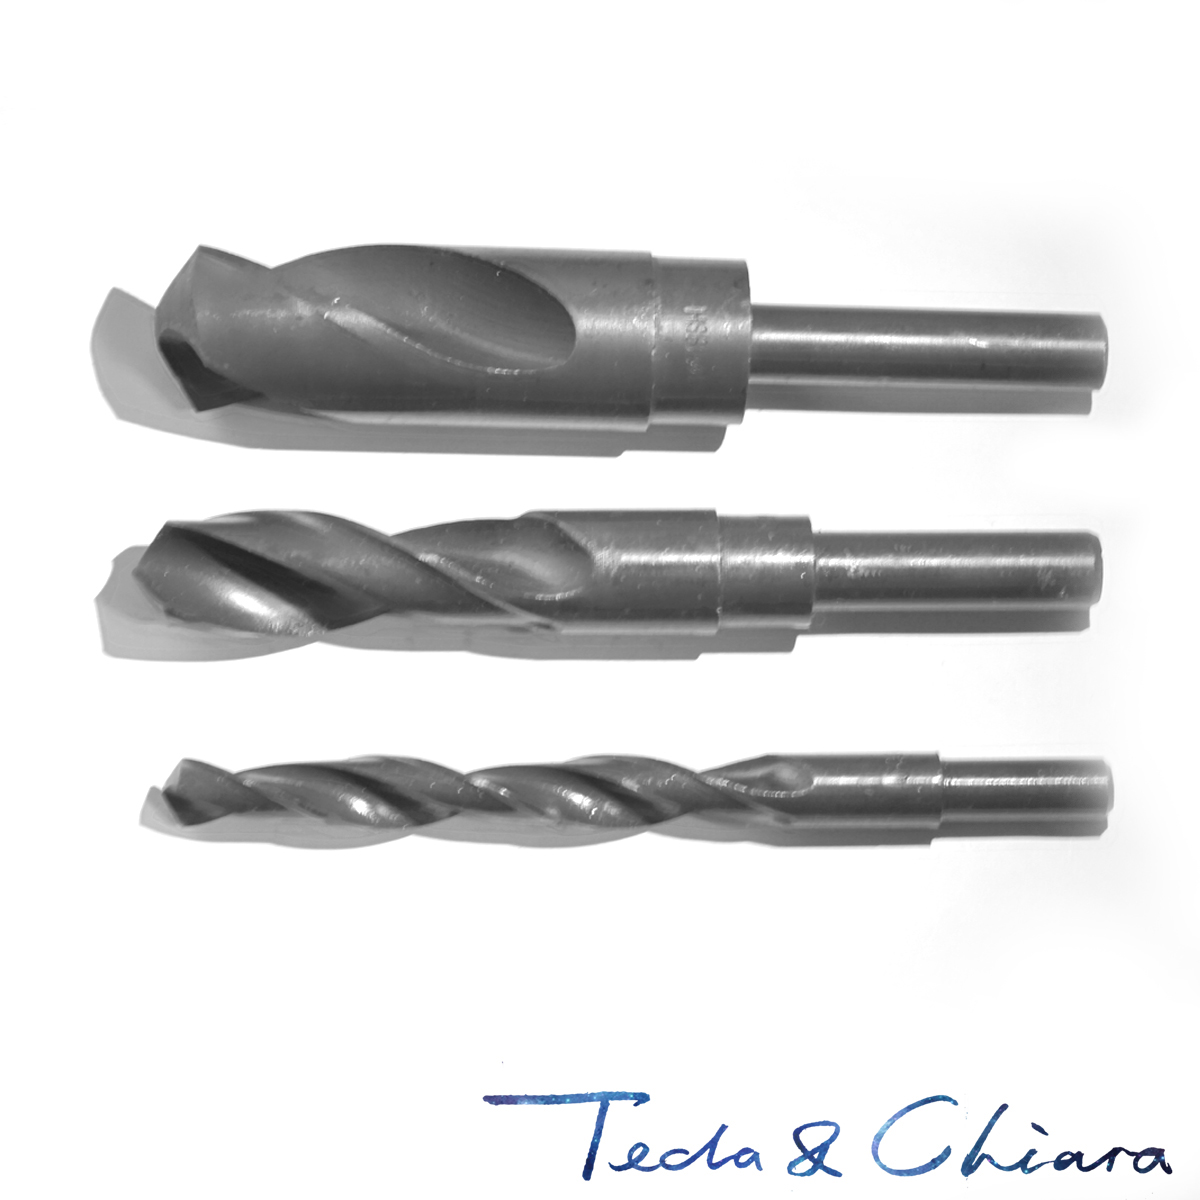 14.1mm 14.2mm 14.3mm 14.4mm 14.5mm HSS Reduced Straight Crank Twist Drill Bit Shank Dia 12.7mm 1/2 Inch 14.1 14.2 14.3 14.4 14.5